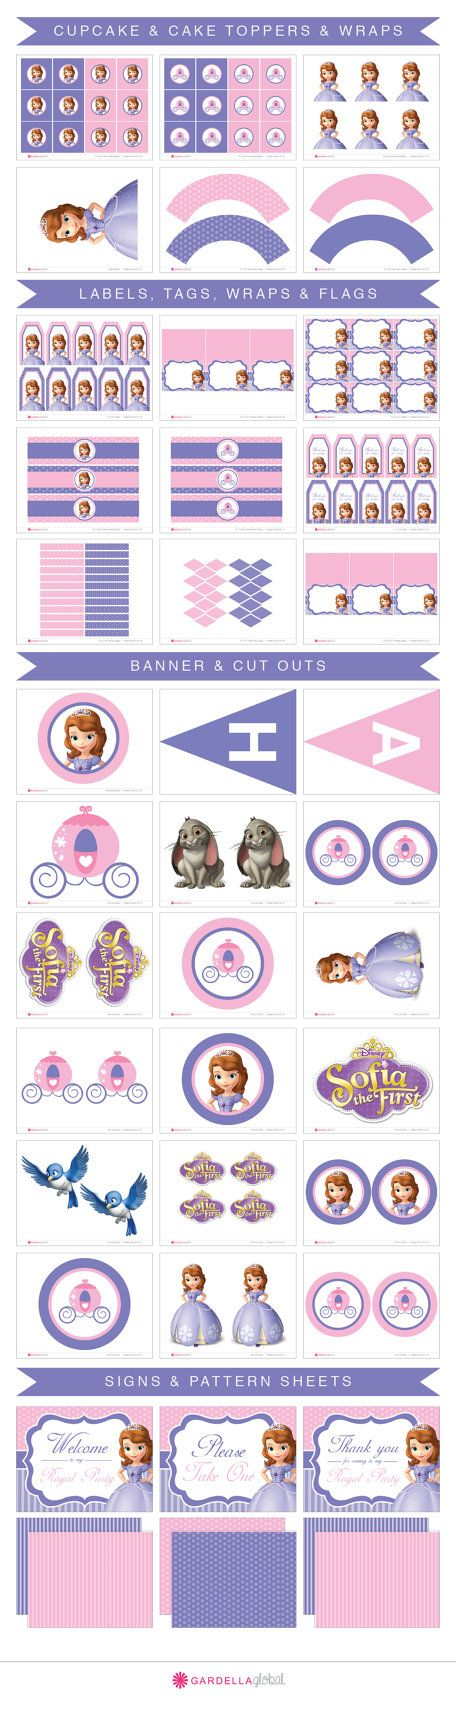 Sofia The First Party Printables